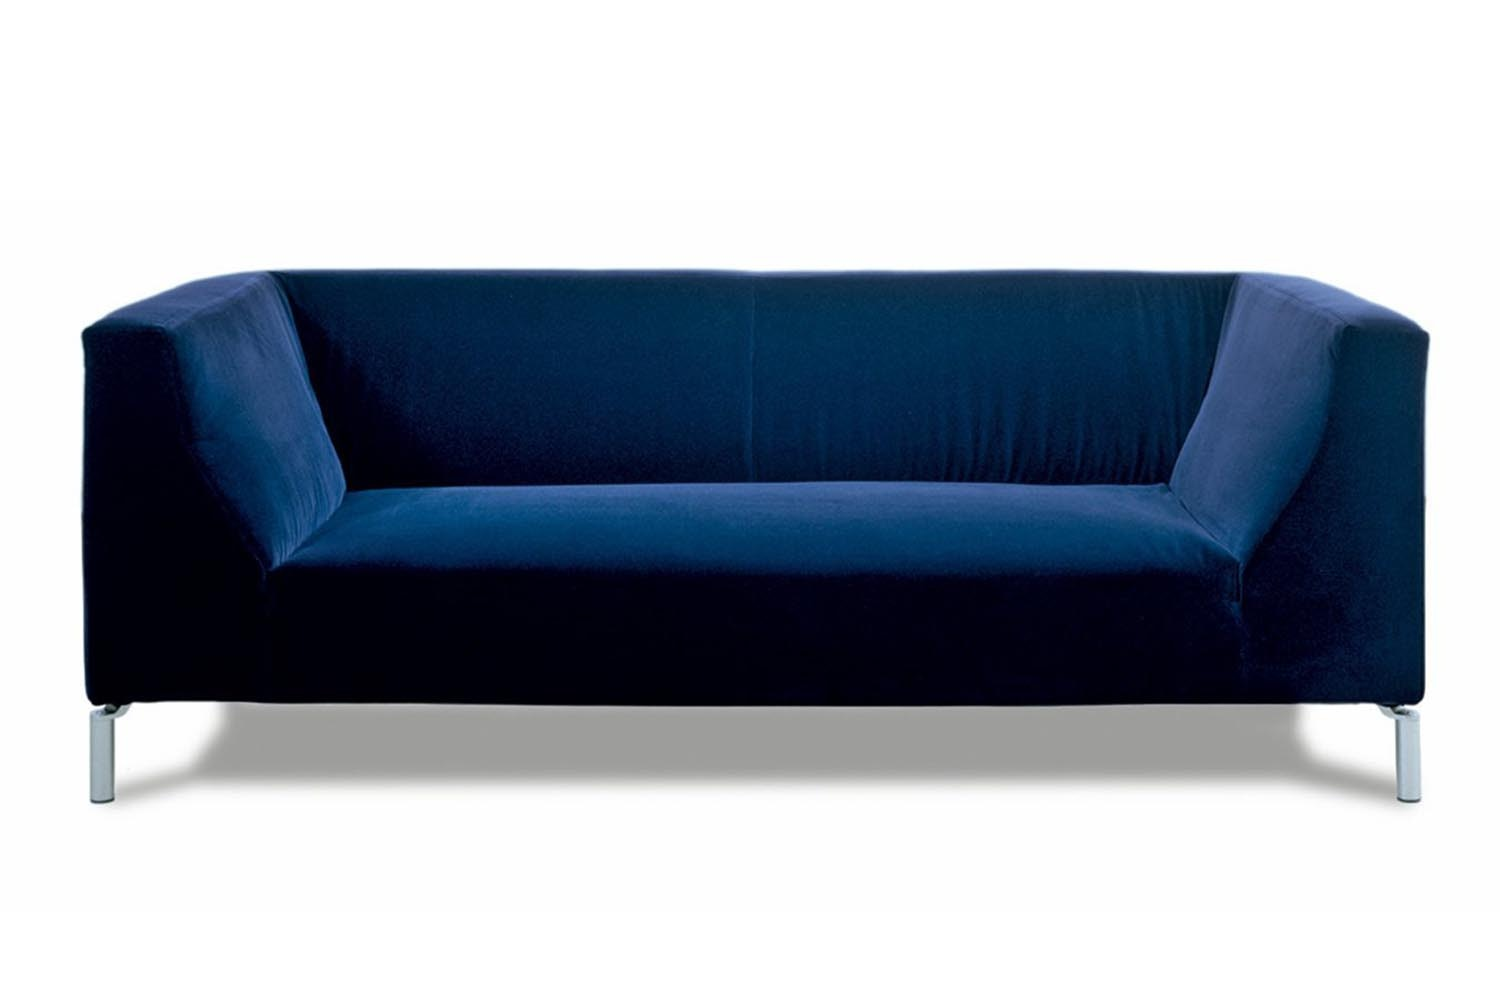 Silver Sofa by Leonardo Volpi for Edra